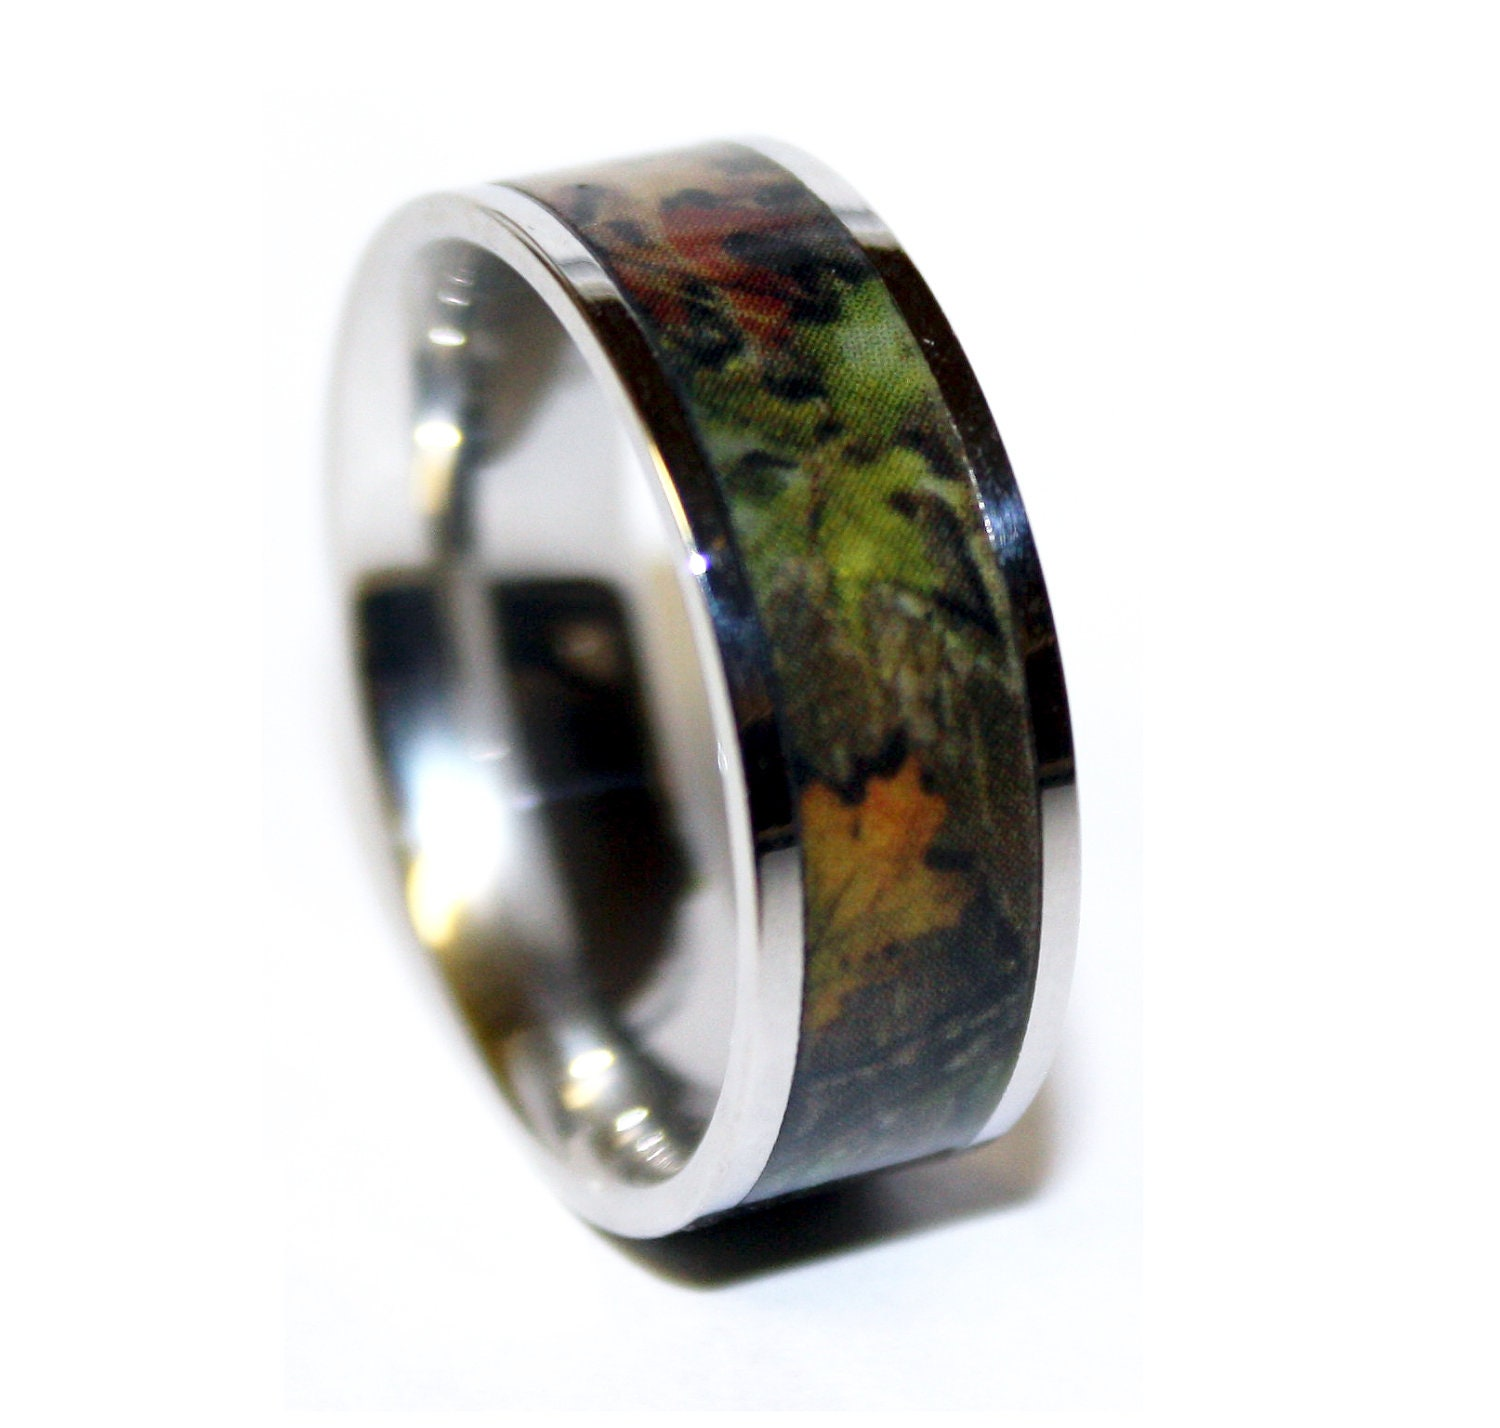 Camo wedding ring titanium wedding band camo ring us for Camoflauge wedding rings